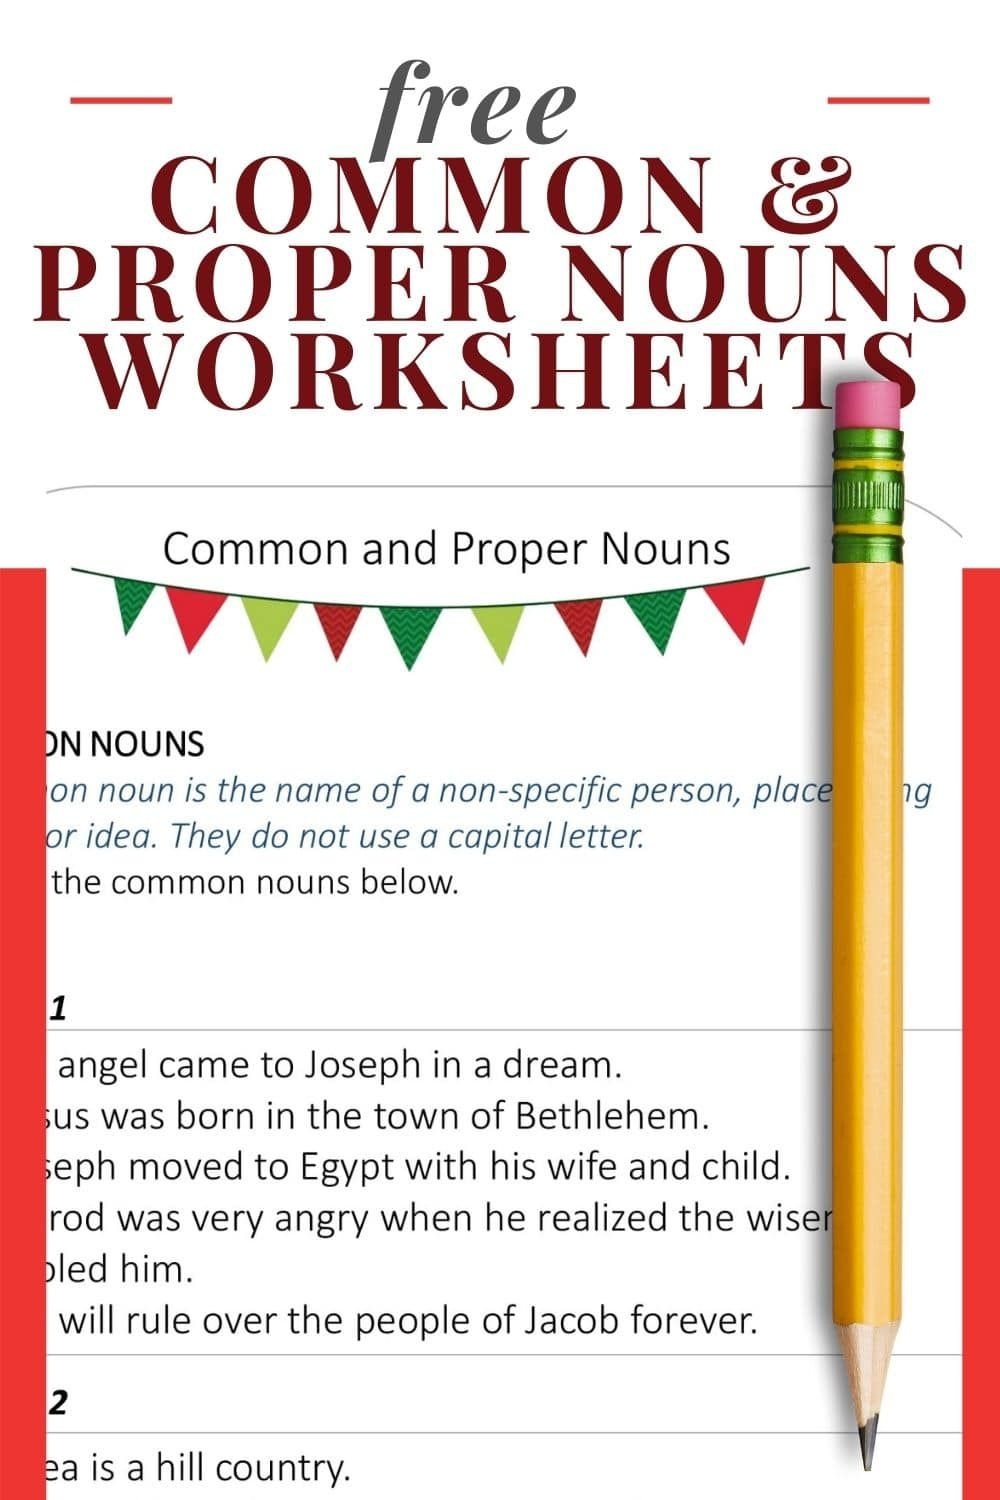 Free 4 Part Common And Proper Nouns Worksheets Proper Nouns Worksheet Common And Proper Nouns Nouns Worksheet [ 1500 x 1000 Pixel ]